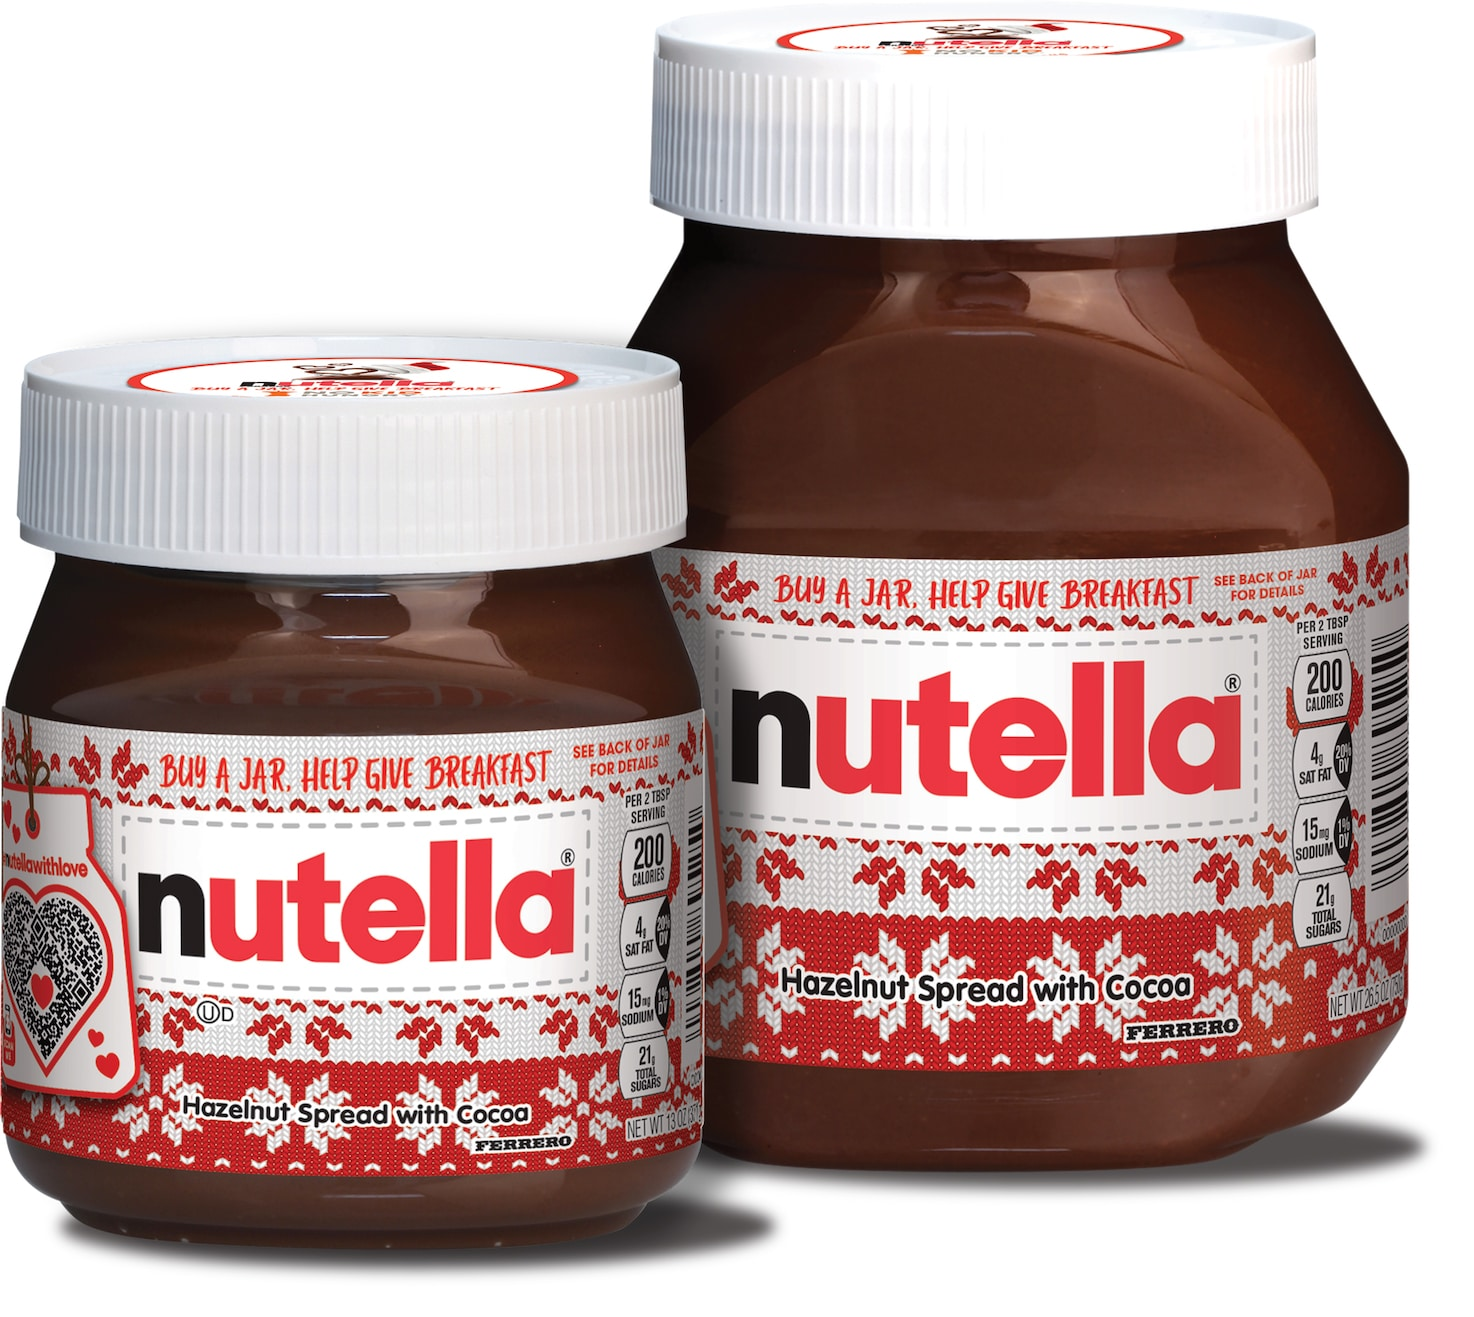 Nutella's DIY Holiday Breakfast Kit includes everything you need to make gingerbread pancakes 14